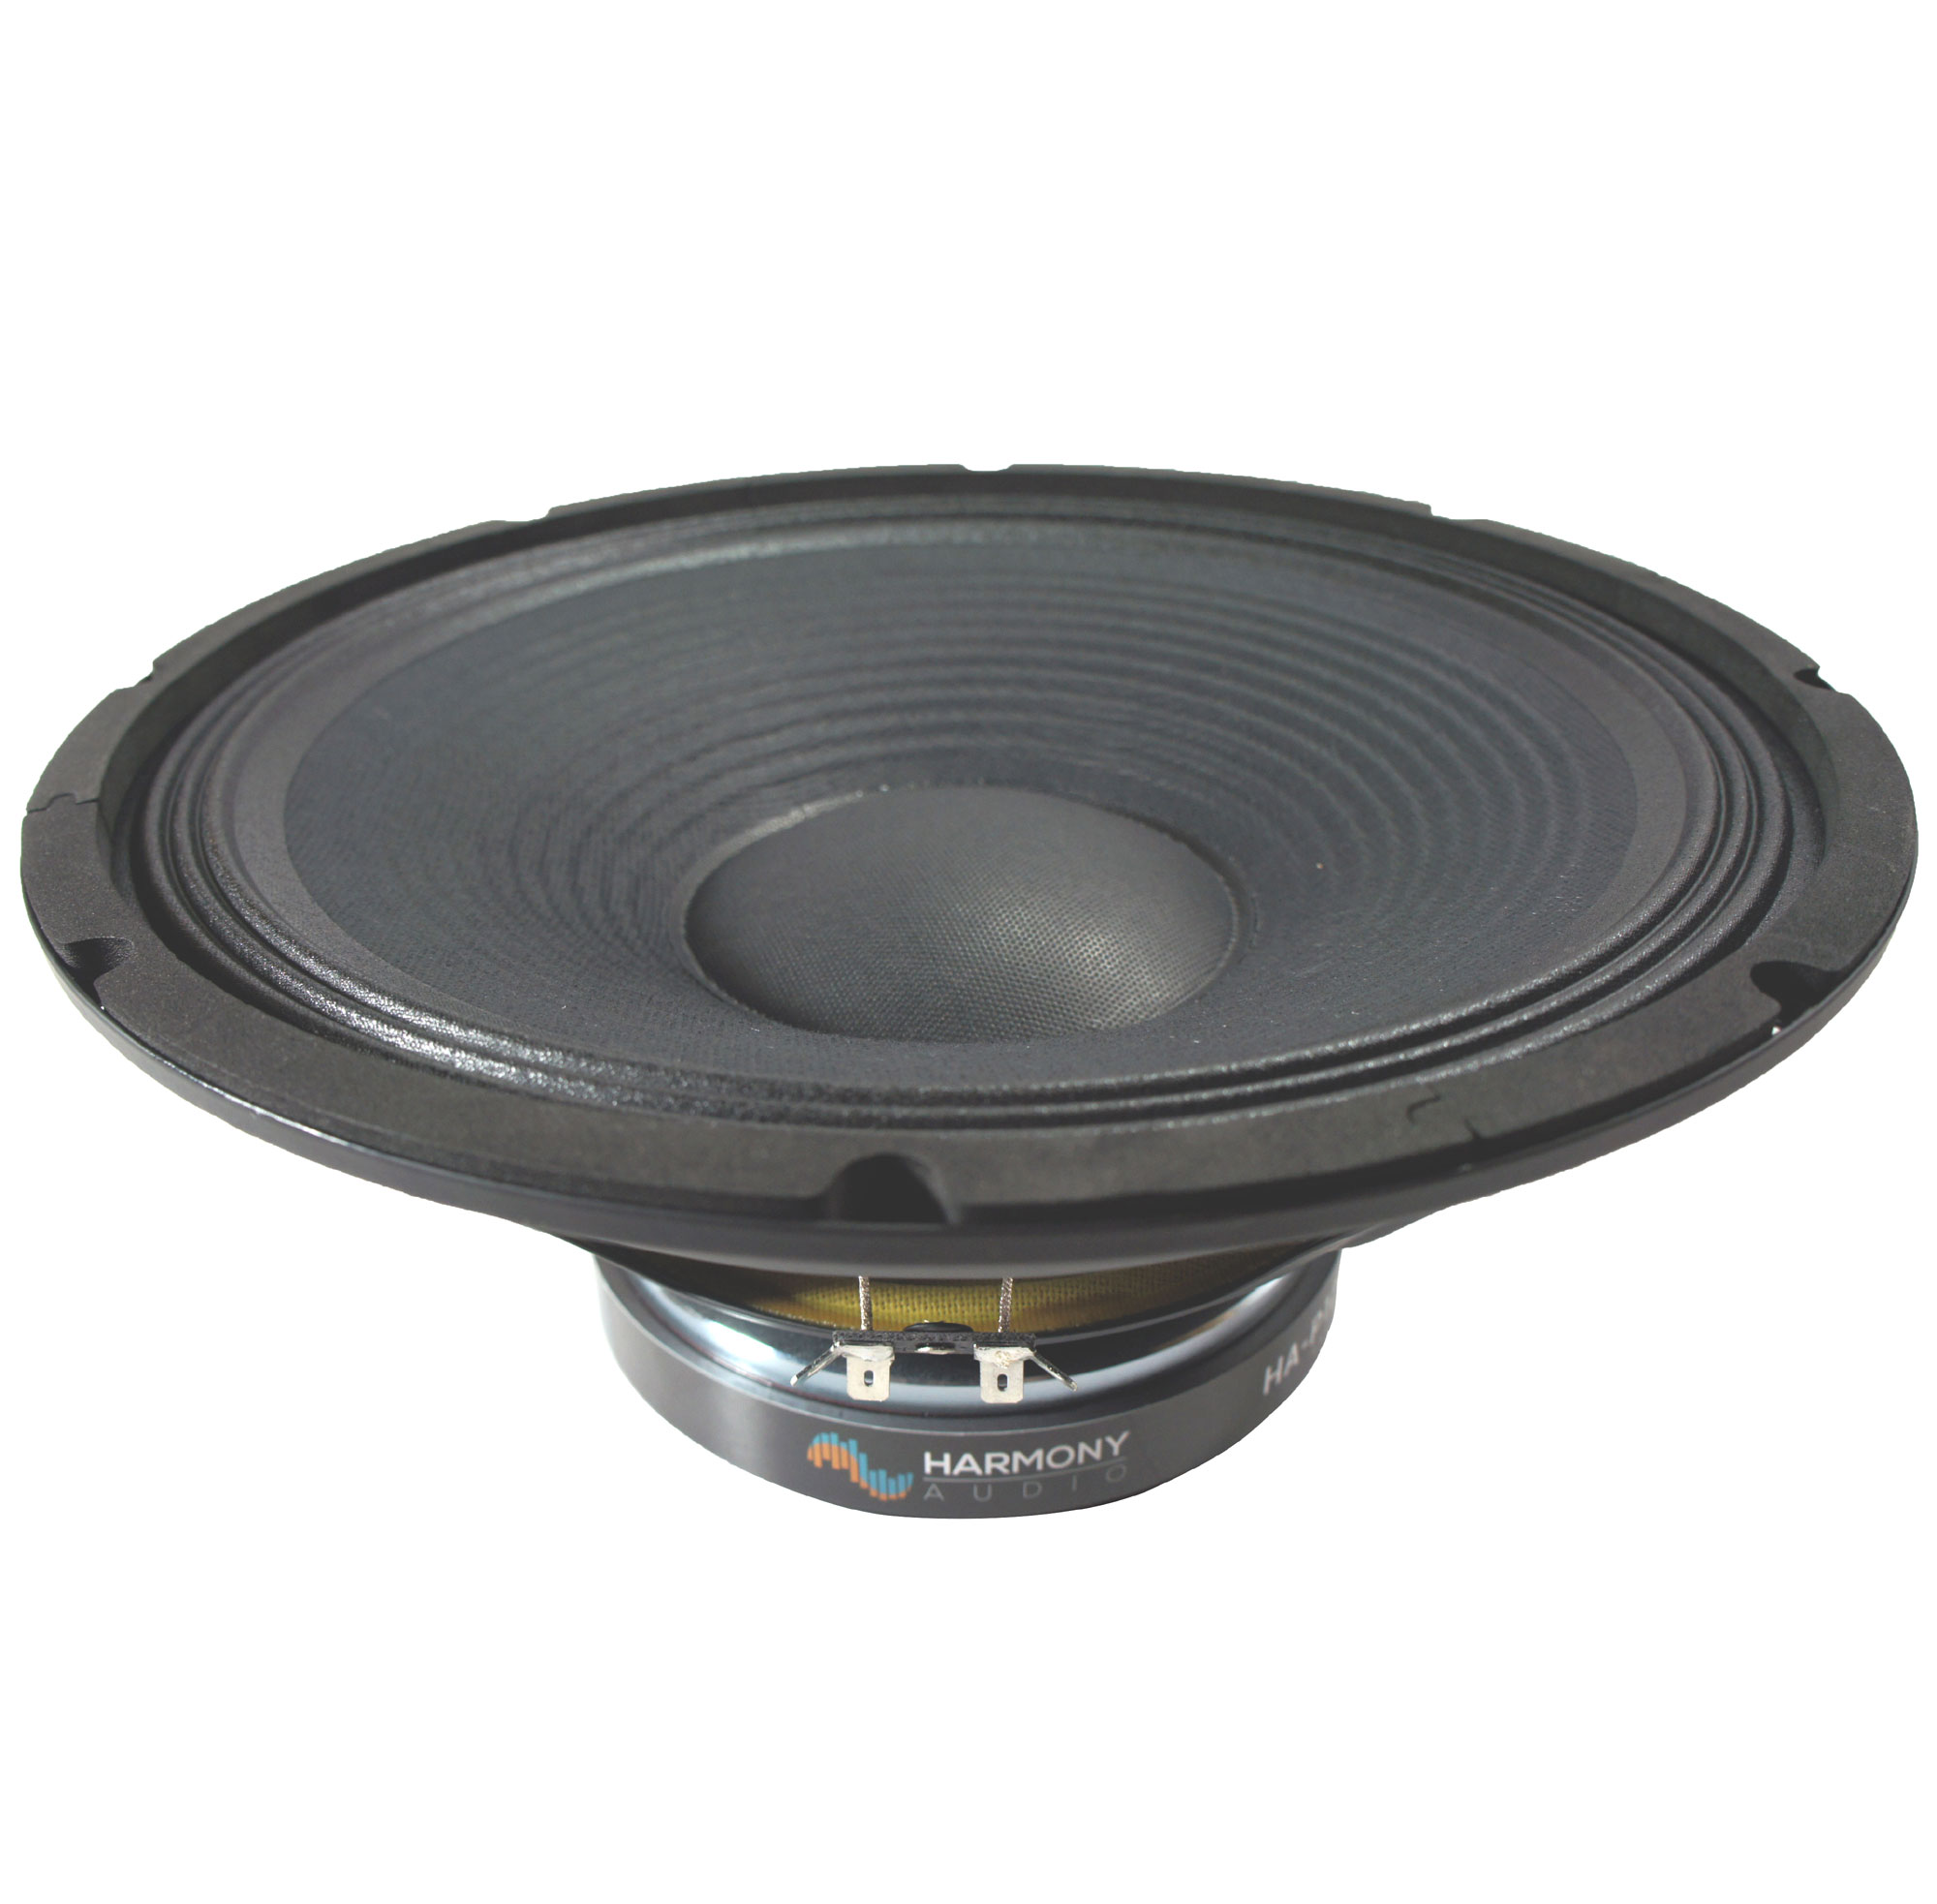 "Harmony HA-P12WS8 Replacement 12"" Pro PA Speaker Woofer for Behringer B212XL"